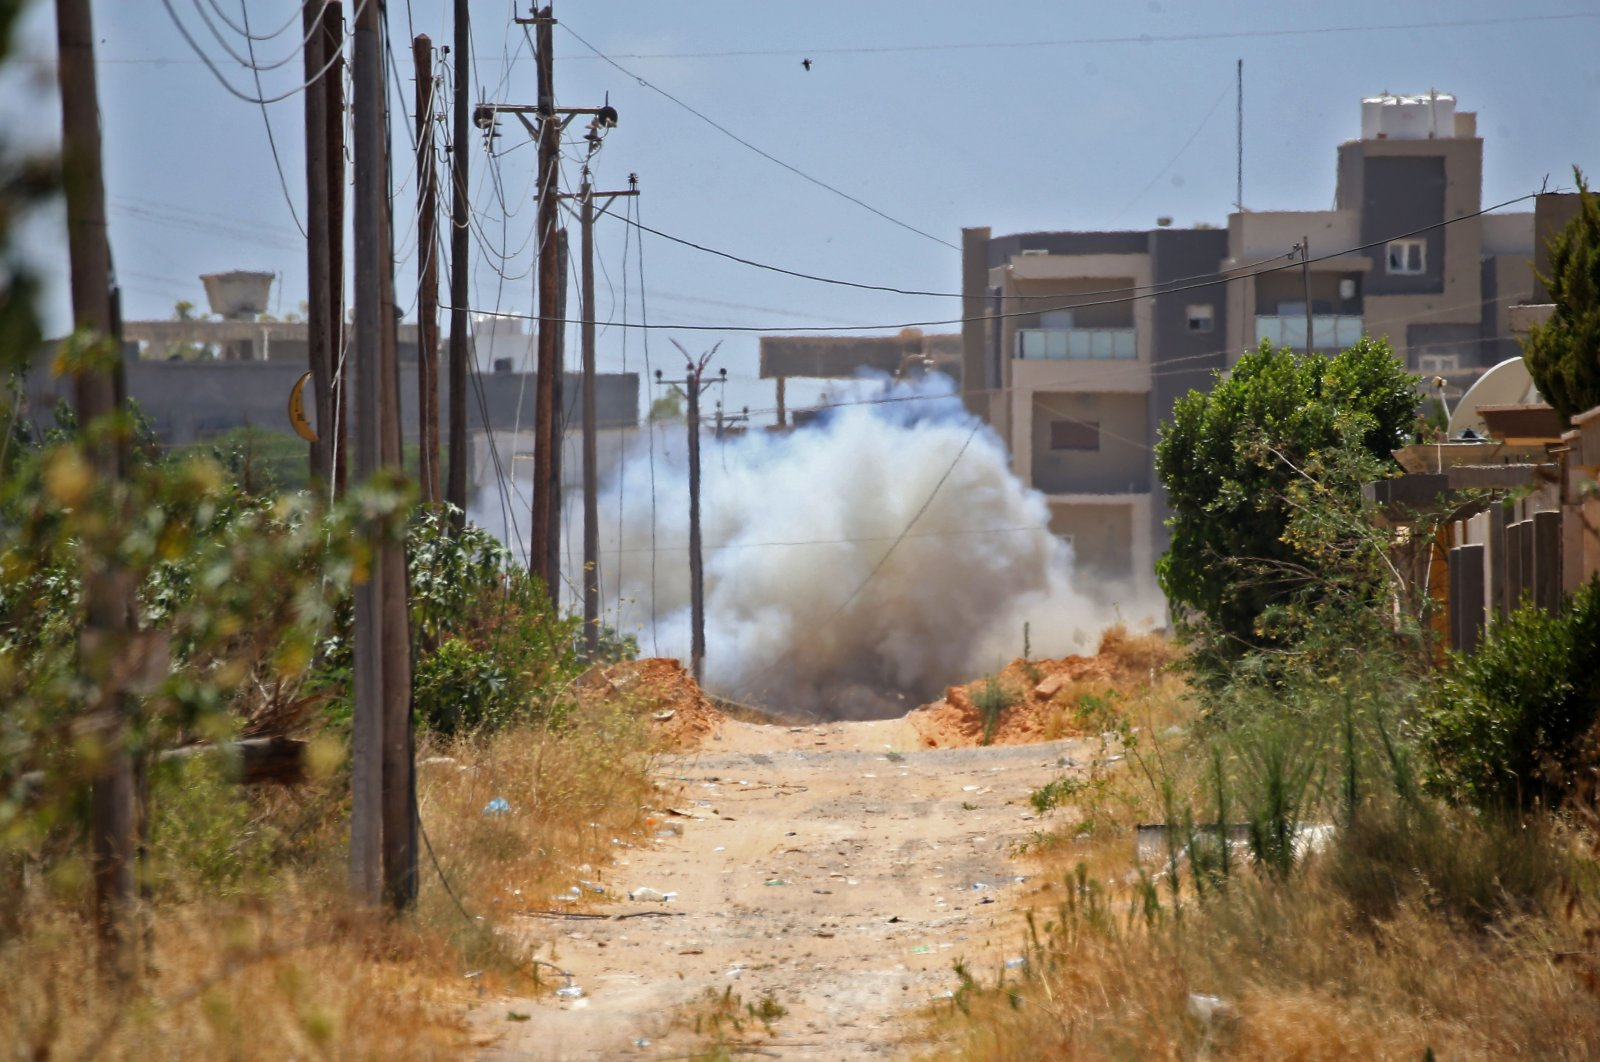 A landmine is exploded during Turkish demining operations in the Salah al-Din area, south of the Libyan capital Tripoli, June 15, 2020. (AFP Photo)